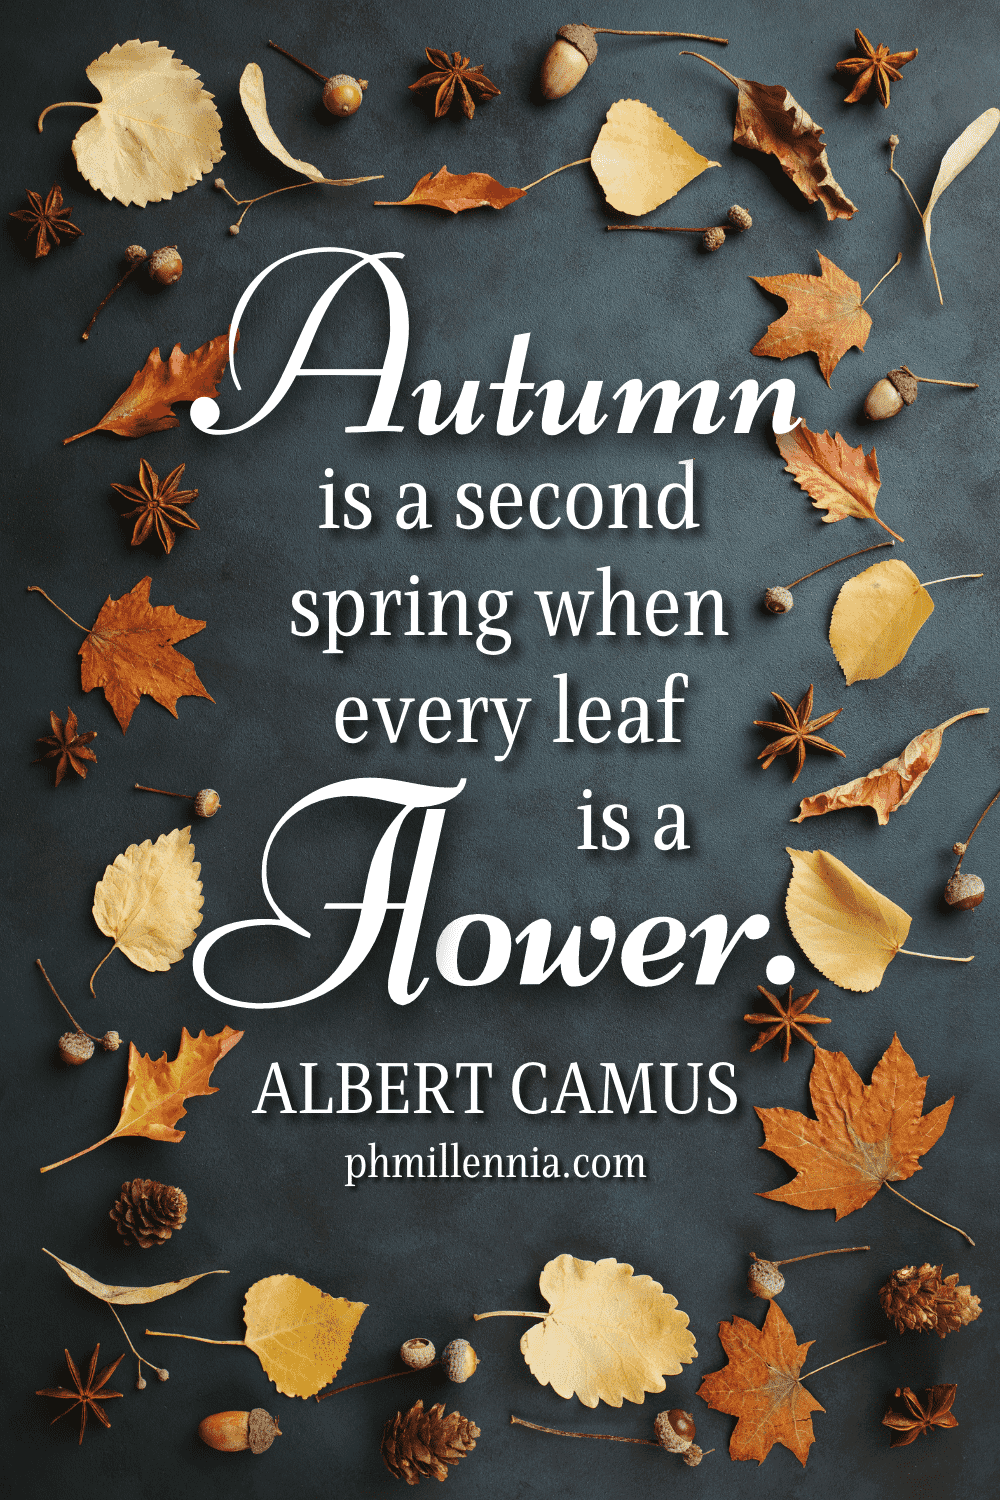 """A graphic featuring an autumn quote/fall saying over an image of autumn/fall leaves arranged flat on a dark surface, designed as a Pinterest Pin for the article """"199 Autumn Quotes to Fall Deeply and Spectacularly in Love With"""" on phmillennia.com"""